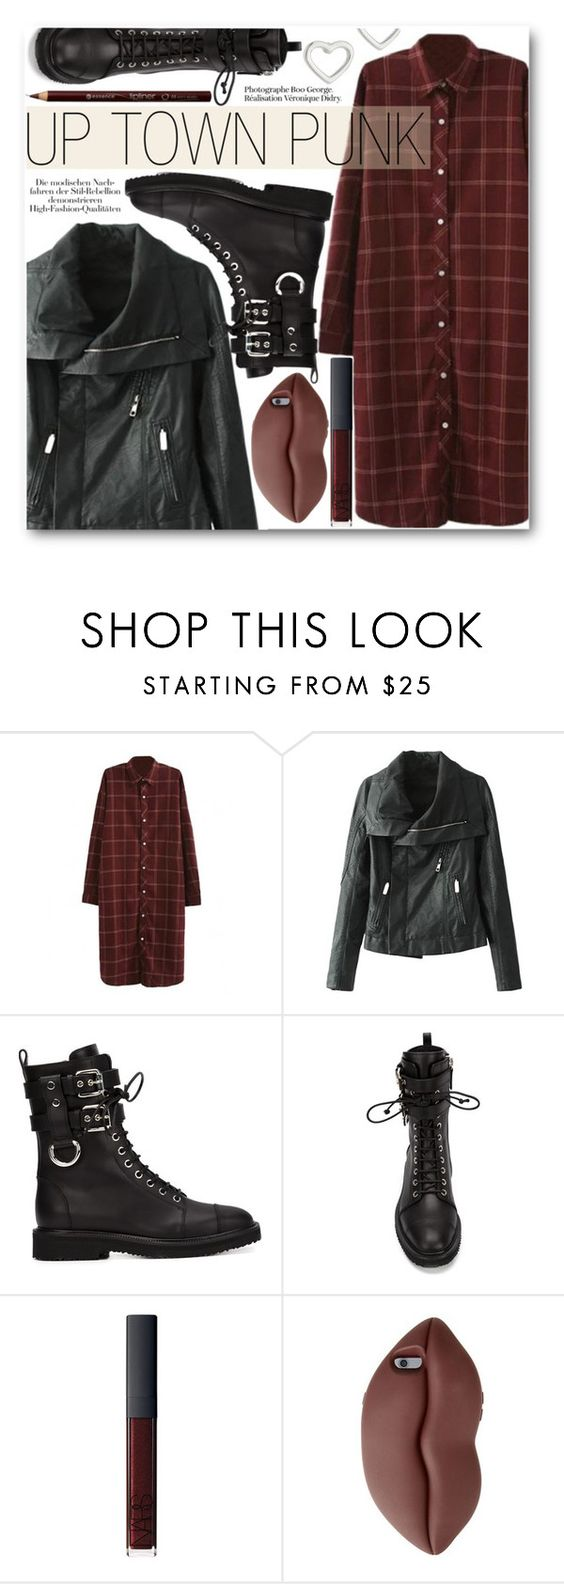 Up Town Punk by black-fashion83 on Polyvore featuring Giuseppe Zanotti, Marc by Marc Jacobs, STELLA McCARTNEY, NARS Cosmetics and stylemoi